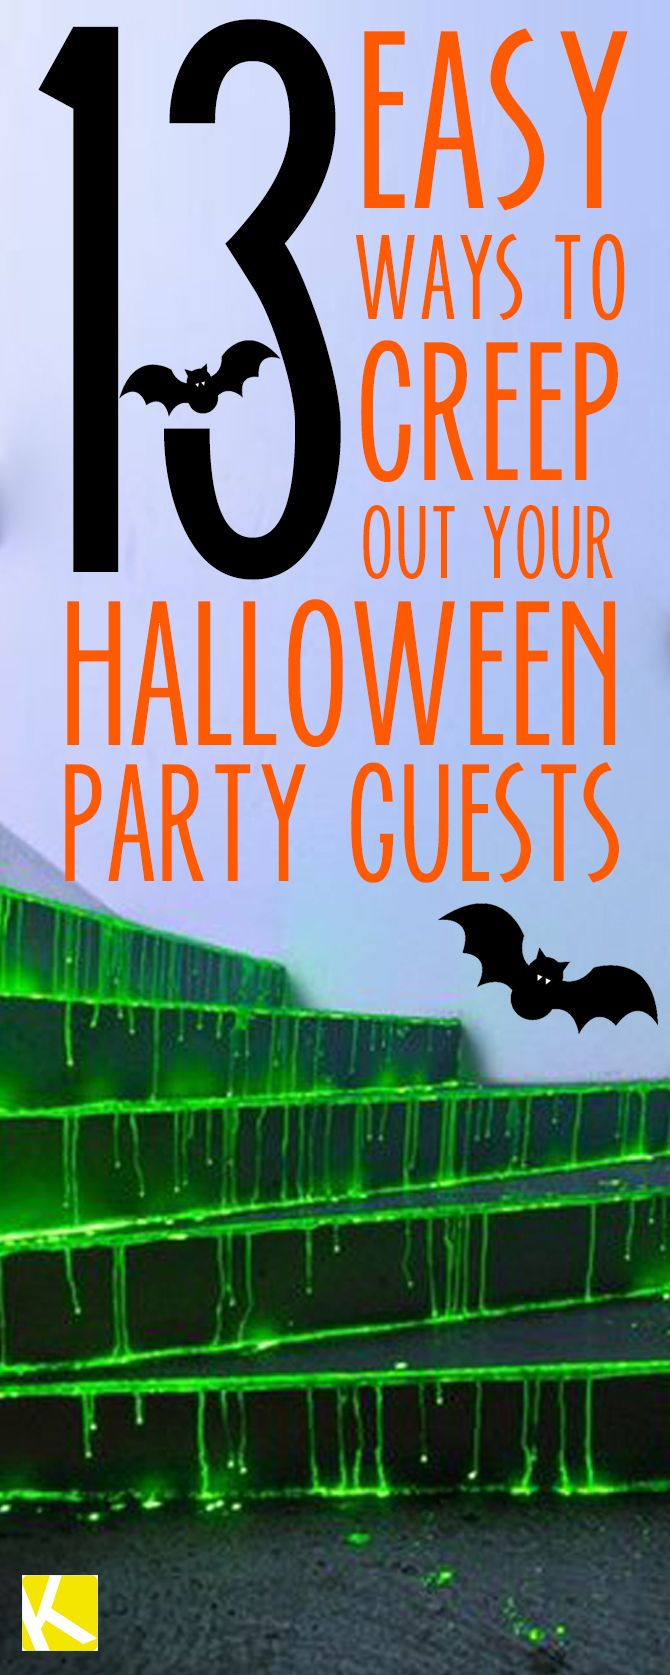 13 creepy ways to decorate your home for halloween pinterest for Ways to decorate your house for halloween